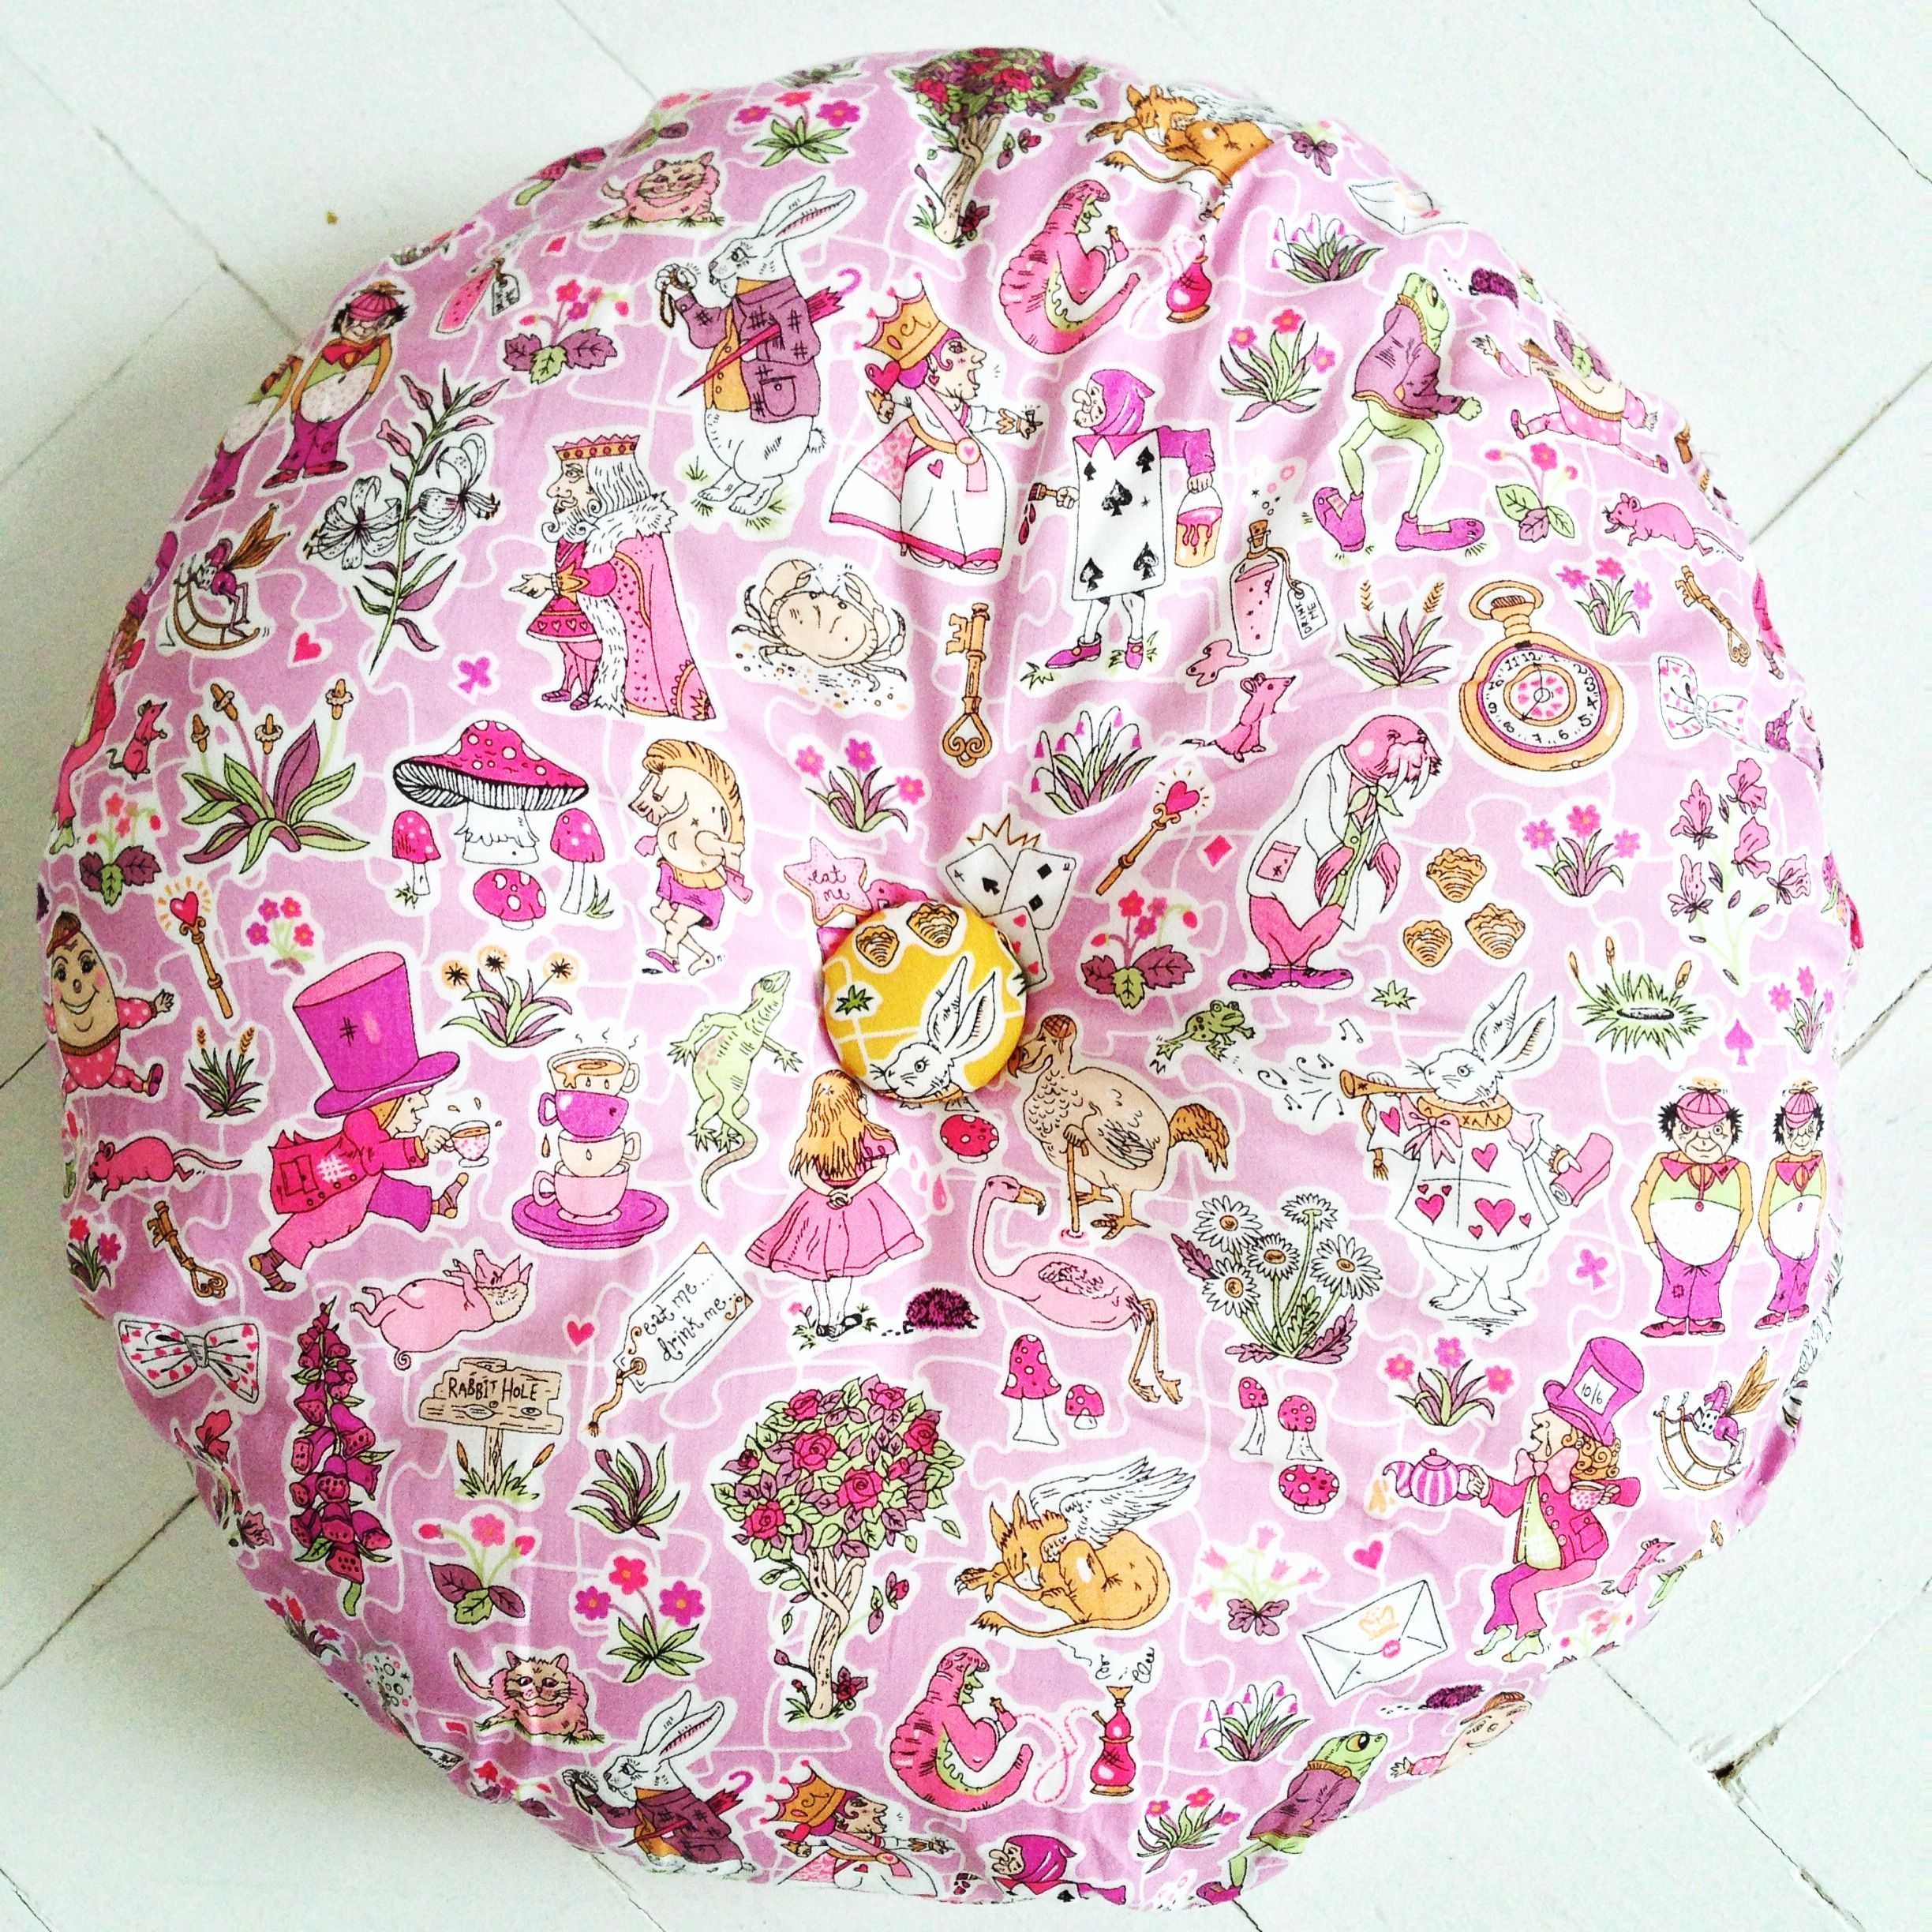 I just adore this Liberty print fabric: Alice on wonderland! My daughter requested a round cushion: just love it! https://www.facebook.com/willaandbobbin?ref=hl